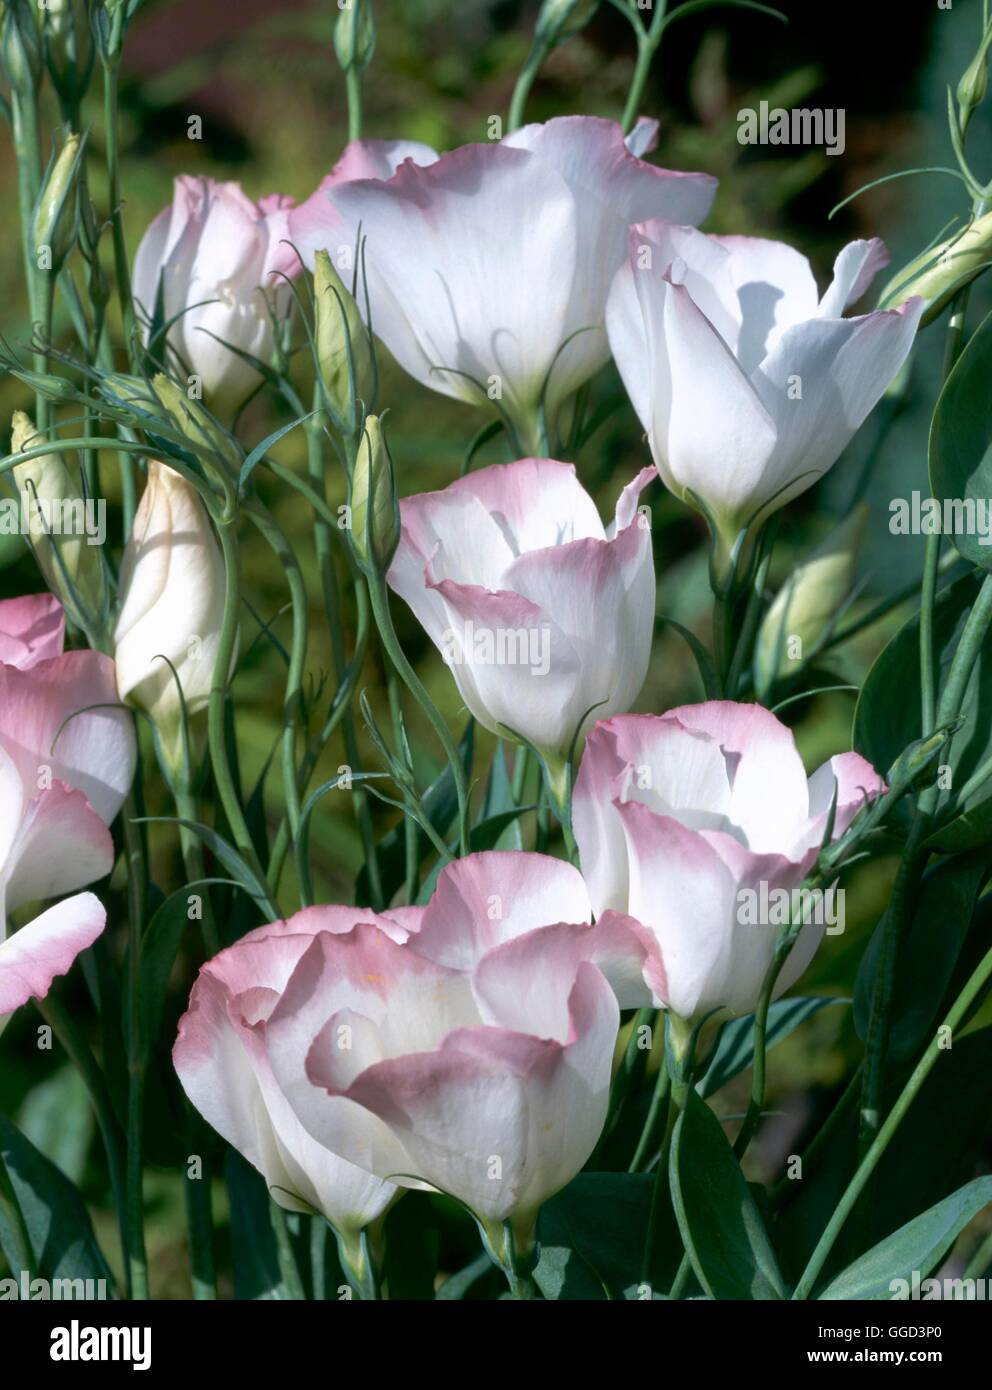 Eustoma grandiflorum   ANN057541 - Stock Image